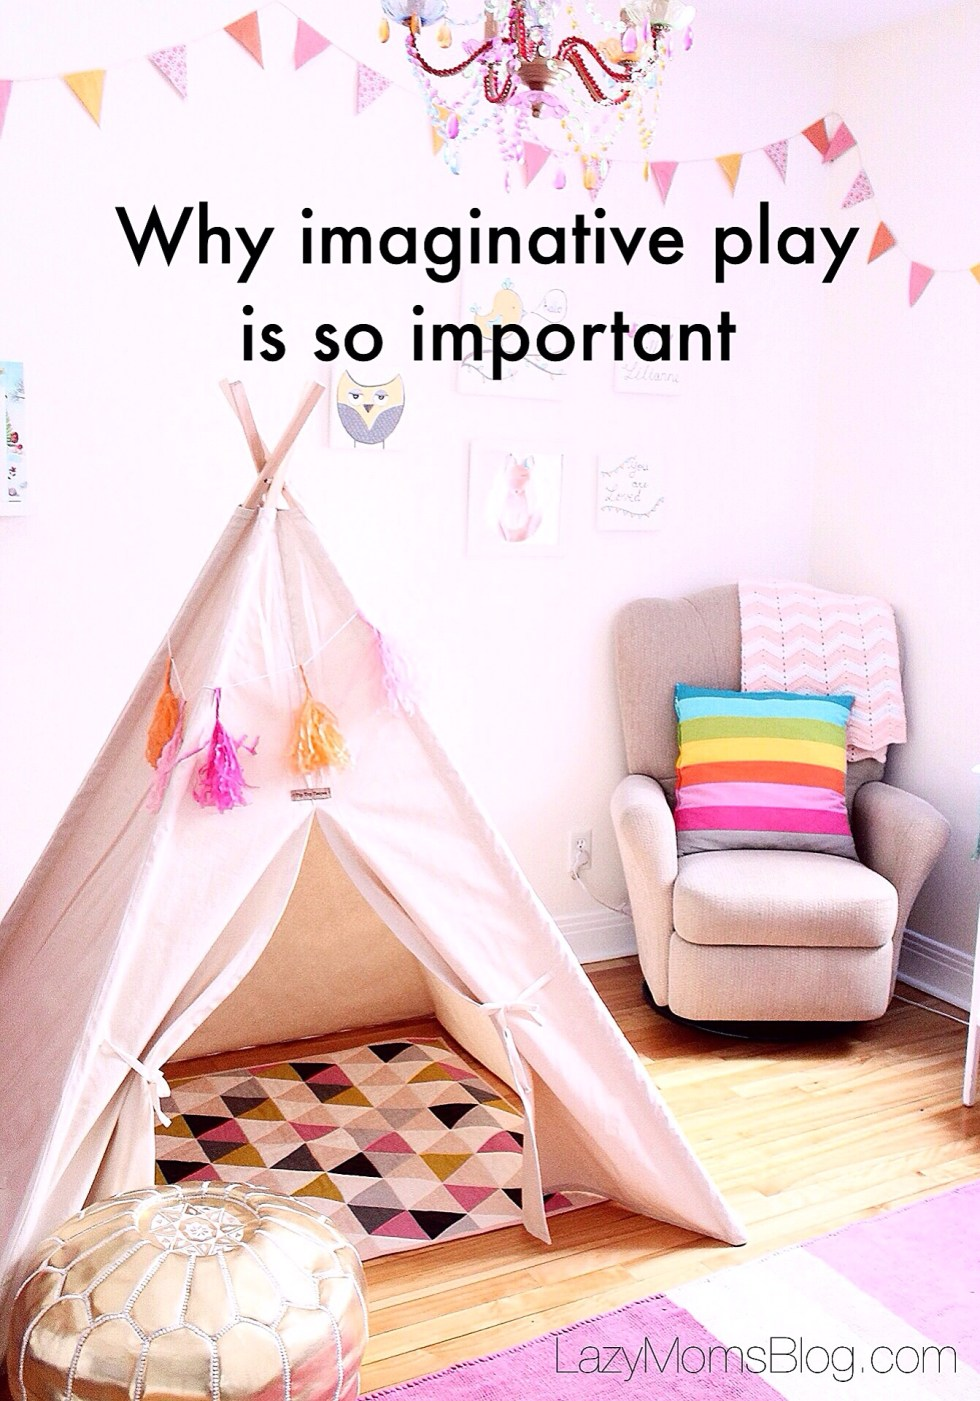 Why imaginative play is so important for your child's development, and how to encourage it in 3 easy to follow tips! #parenting #kidsdevelopment